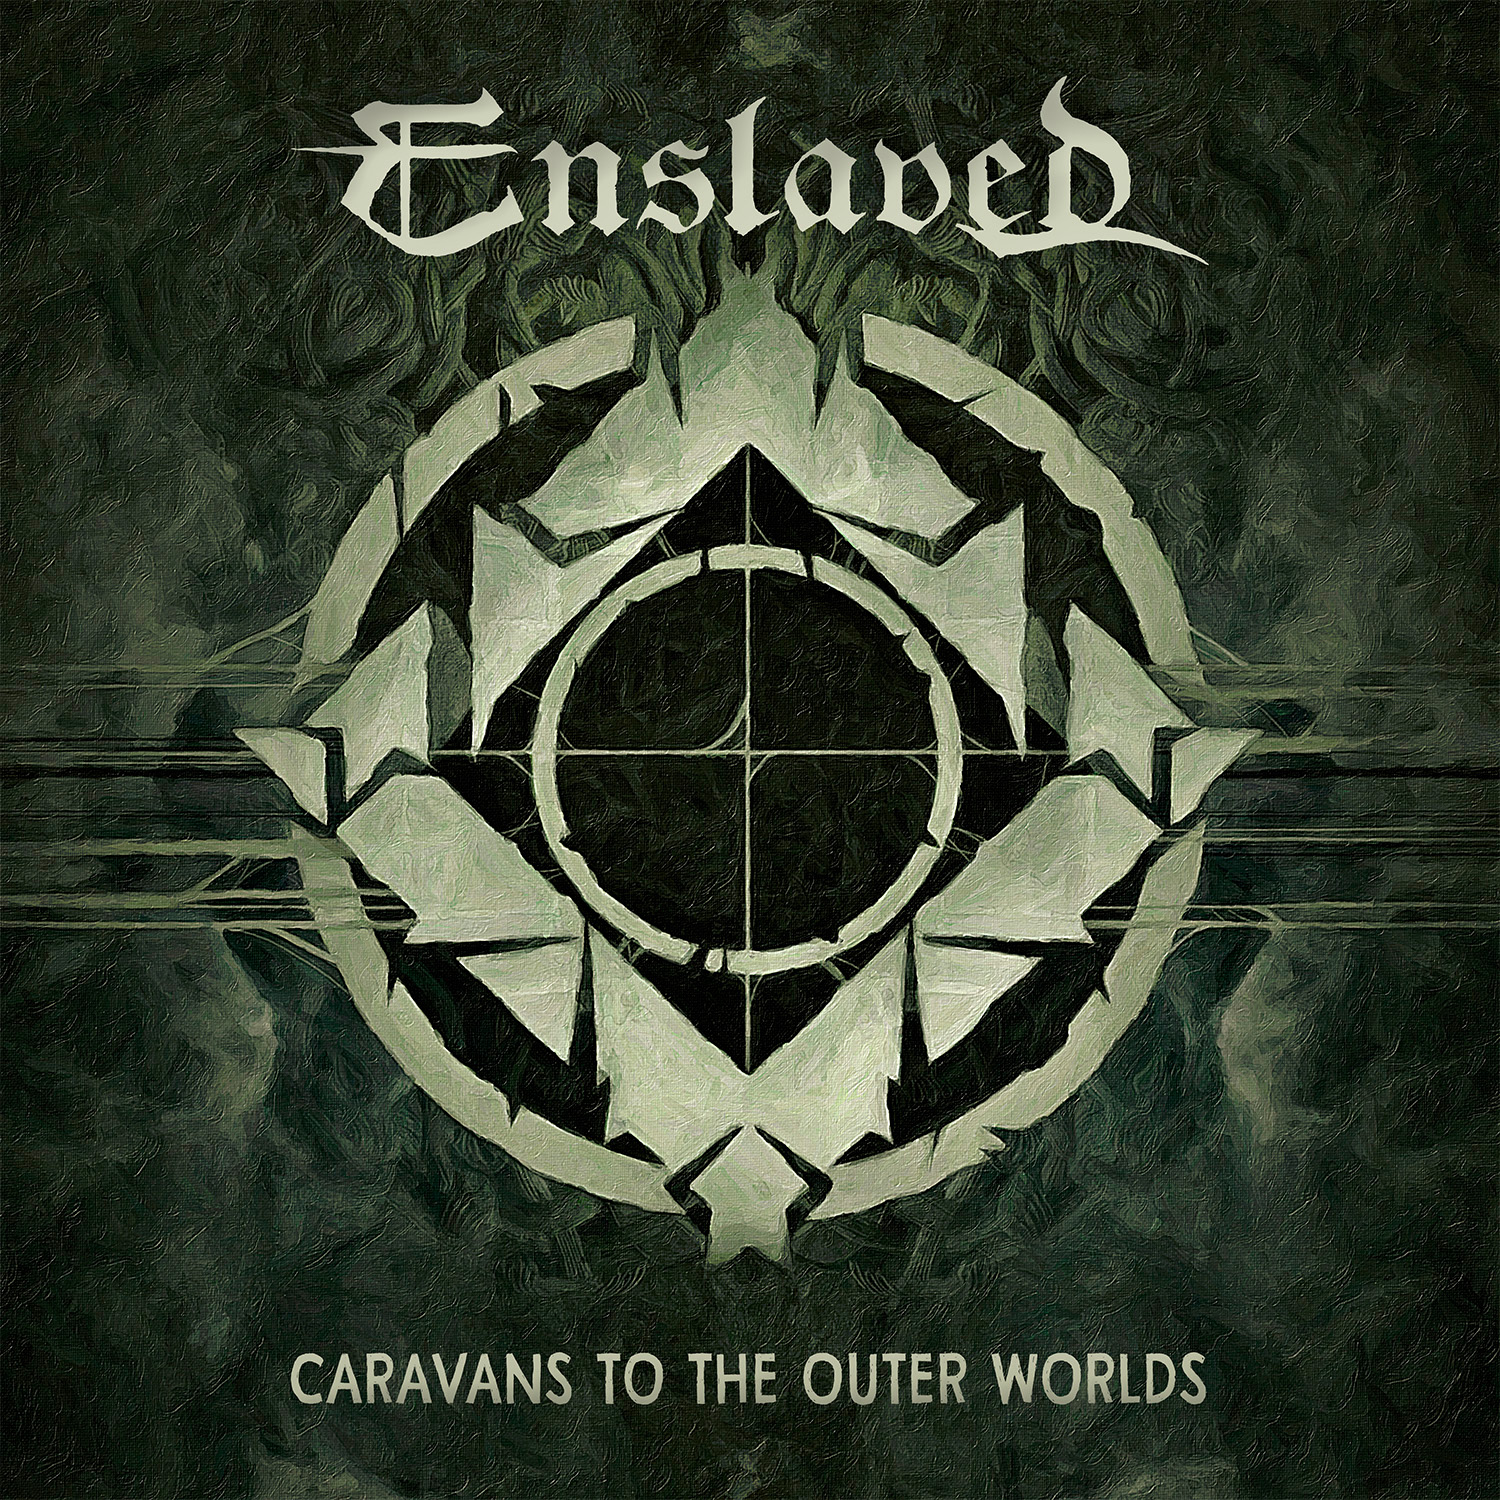 enslaved-caravans-to-the-outer-worlds